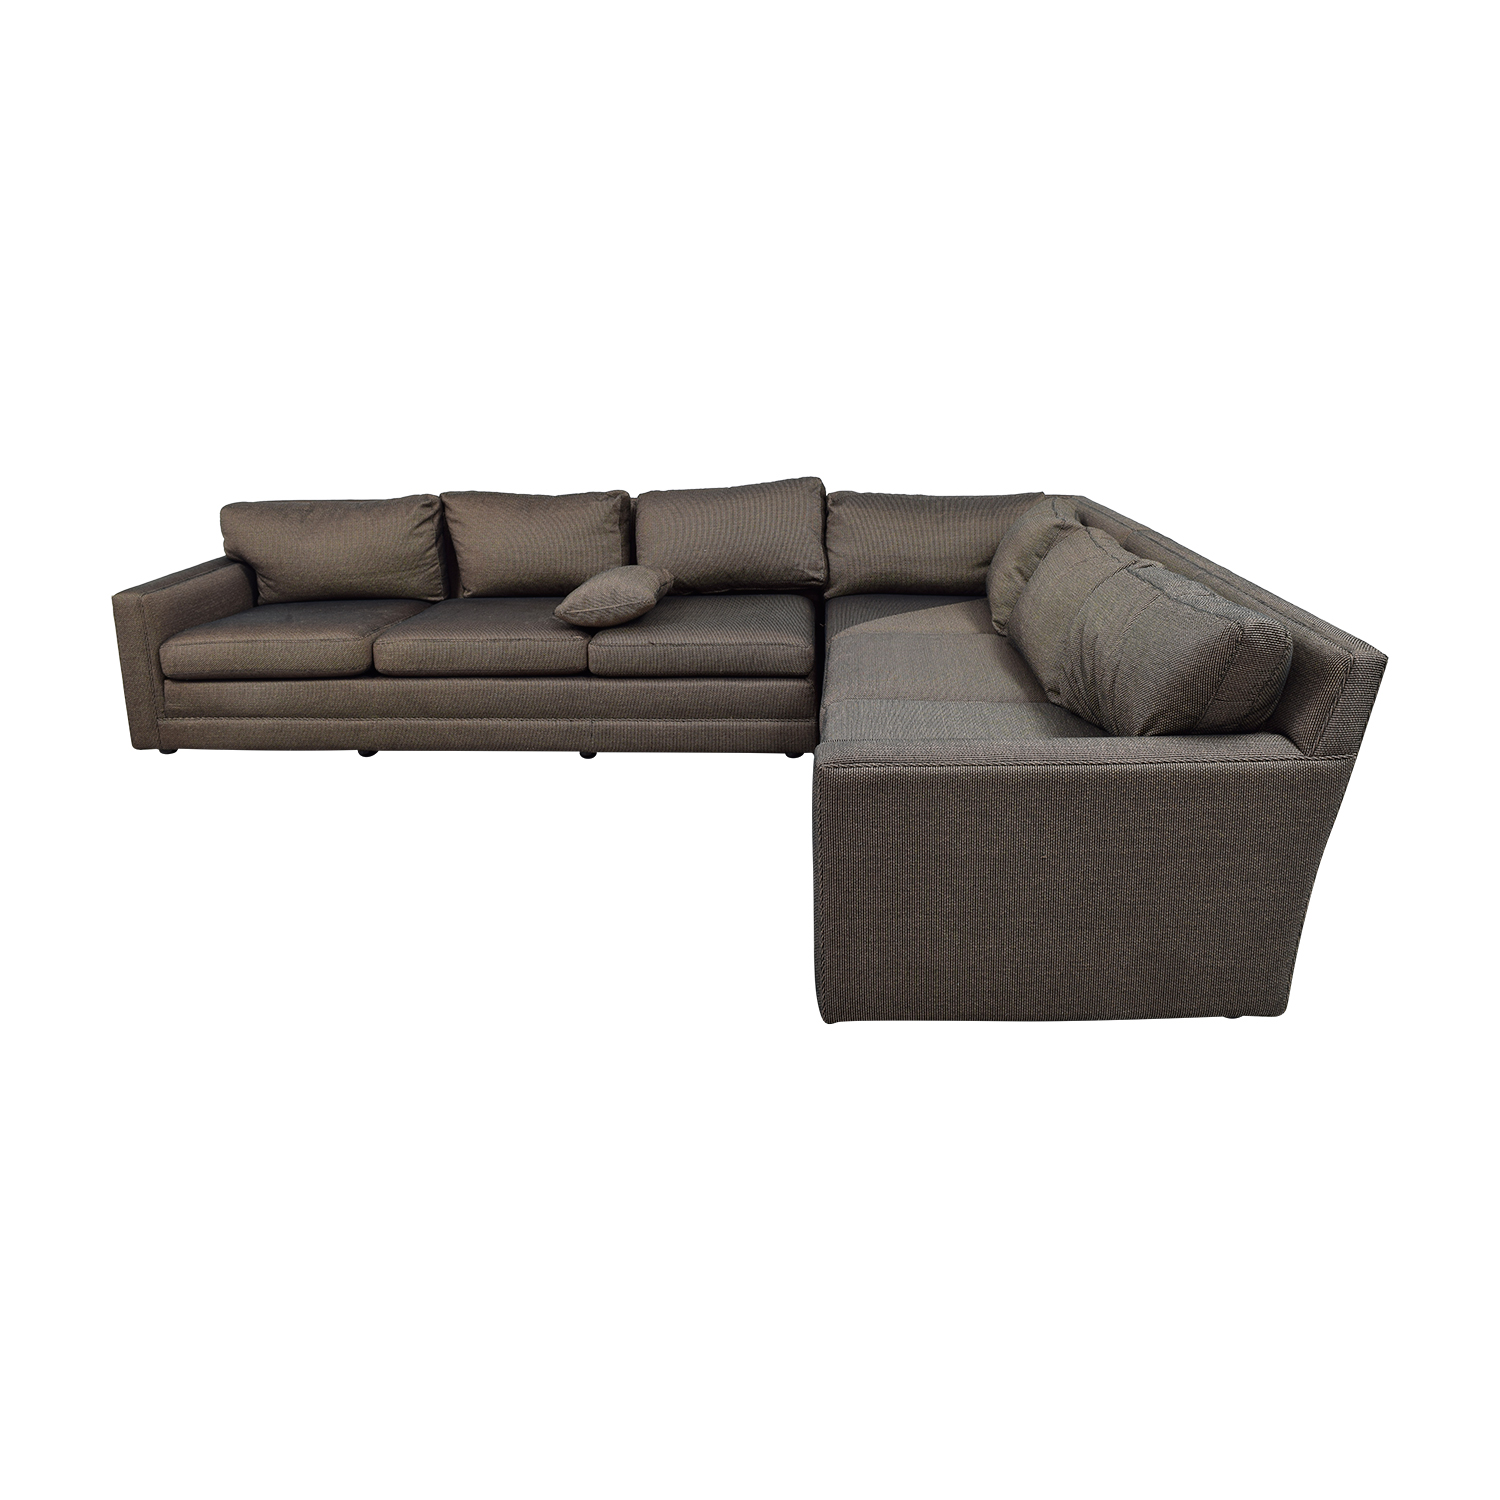 88 off keilhauer keilhauer cascade black and tan tweed l shaped sectional sofas